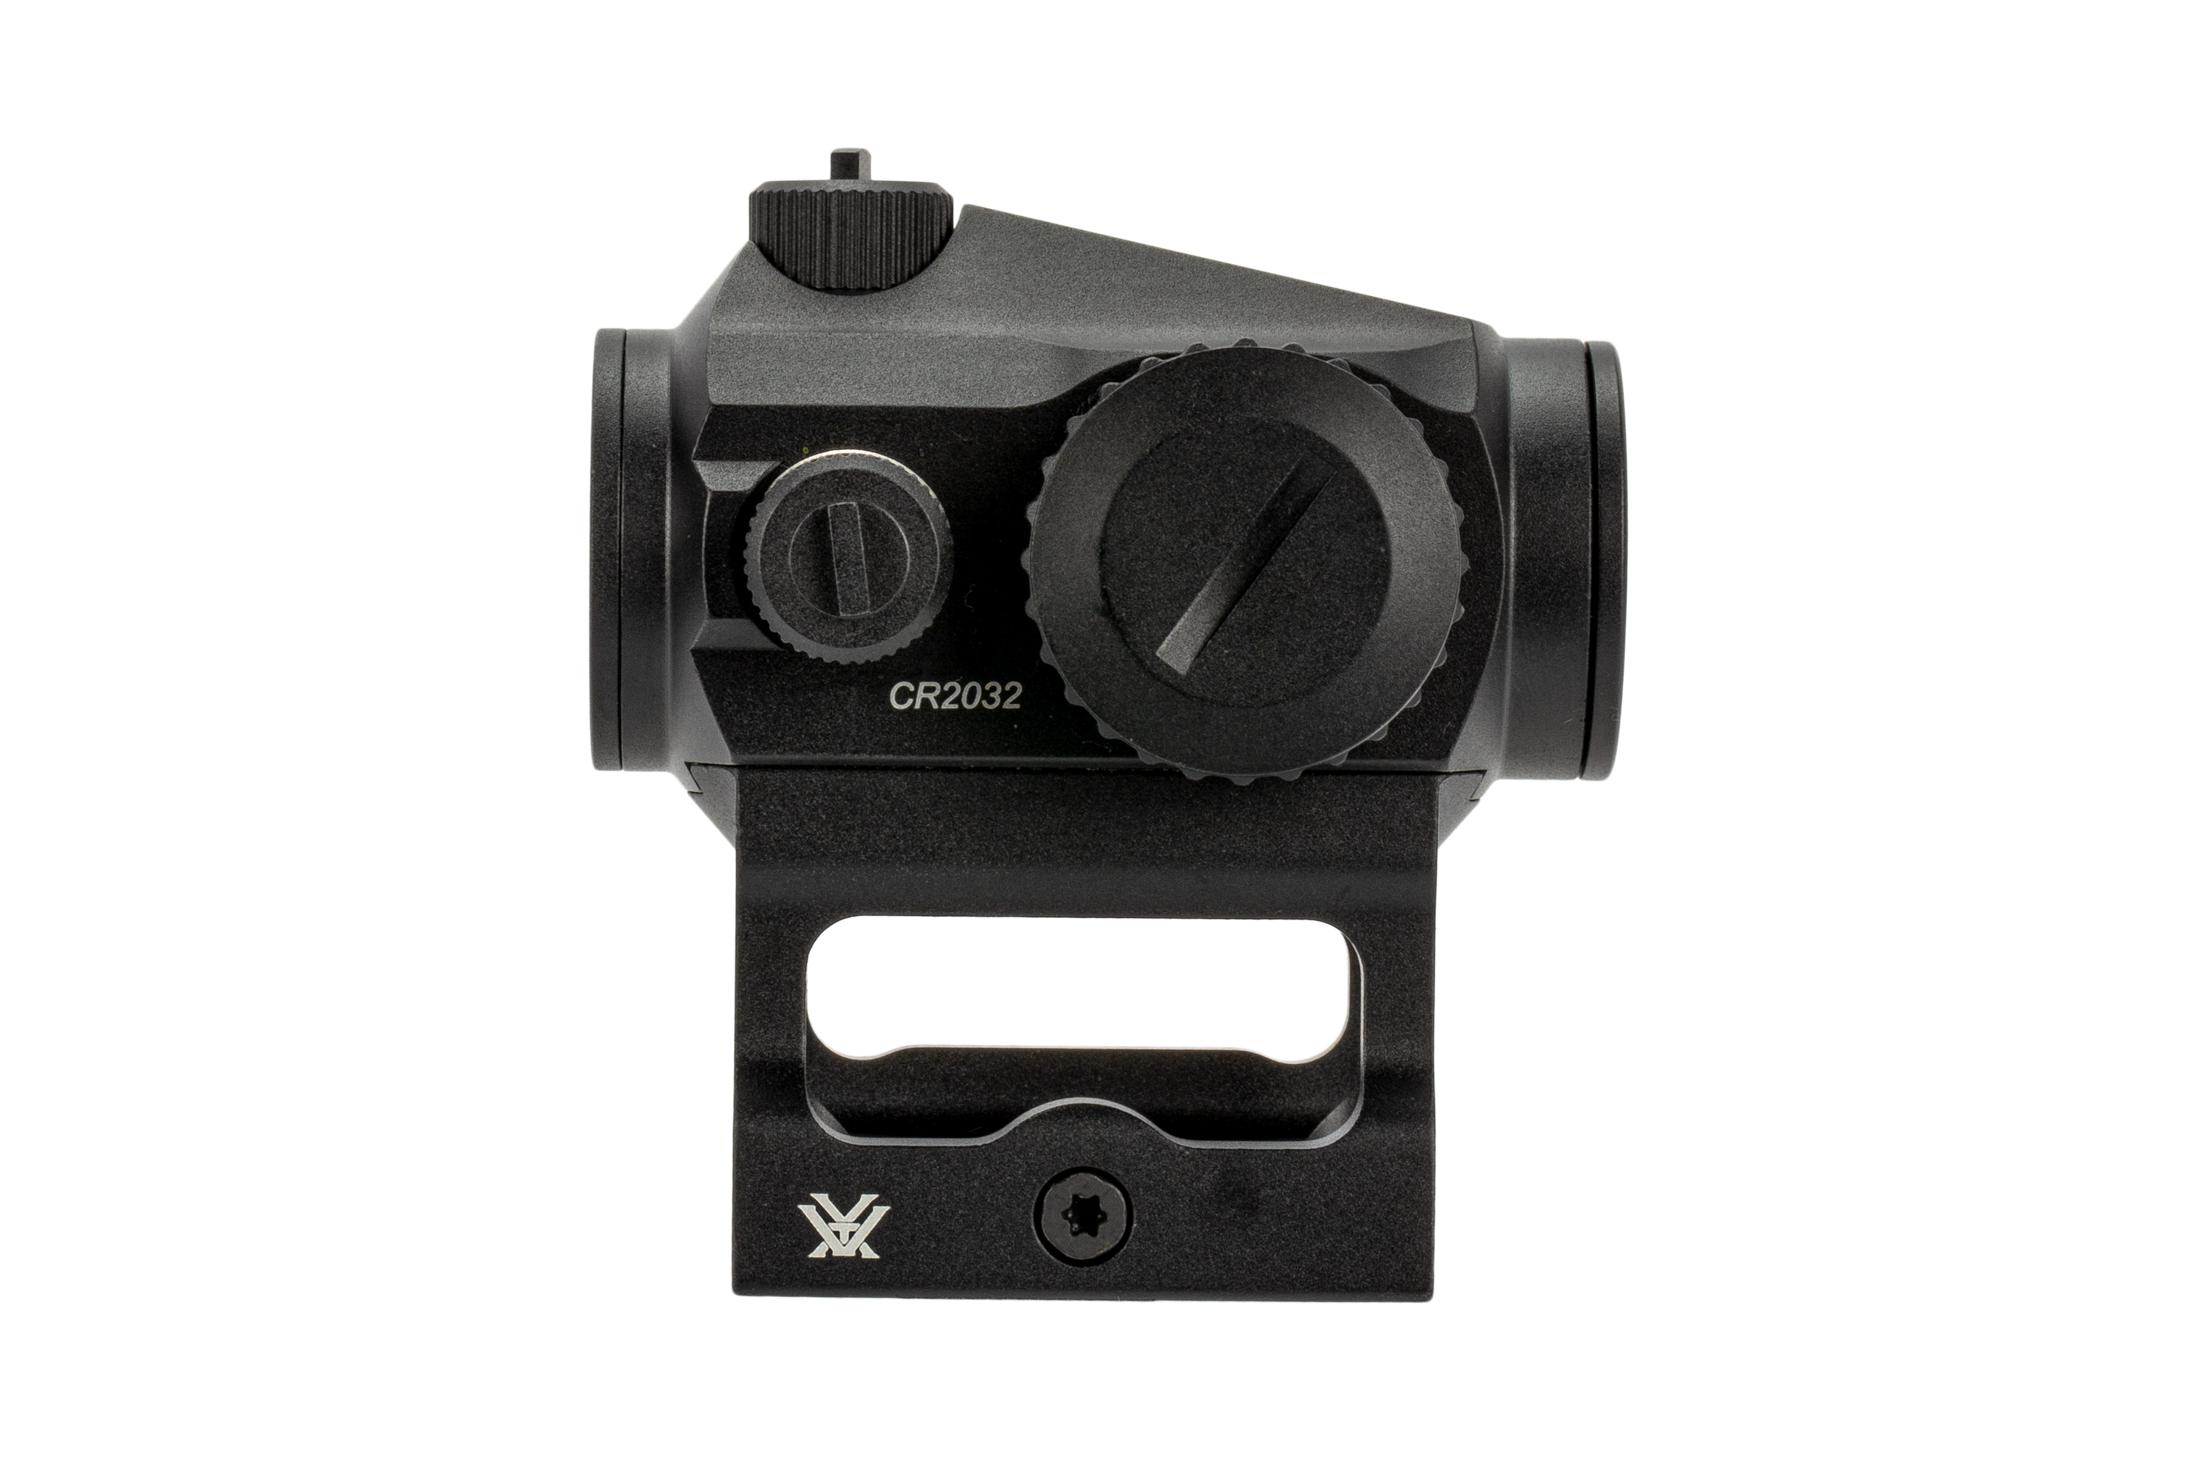 Vortex Optics Crossfire 2 micro red dot with AR-15 mount and right side controls.